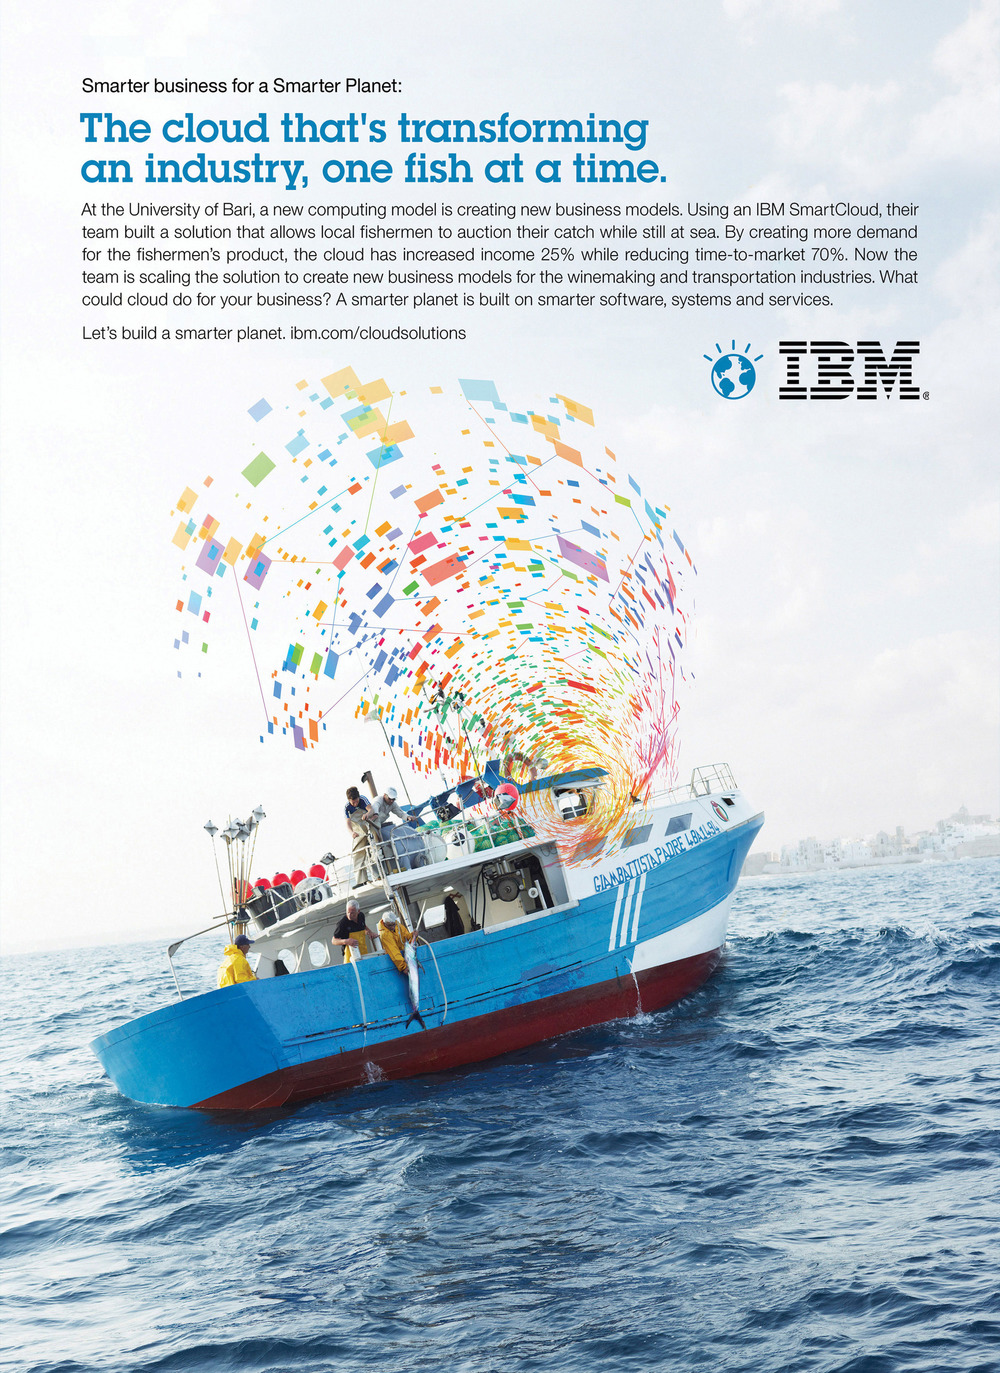 IBM_fishing.jpg